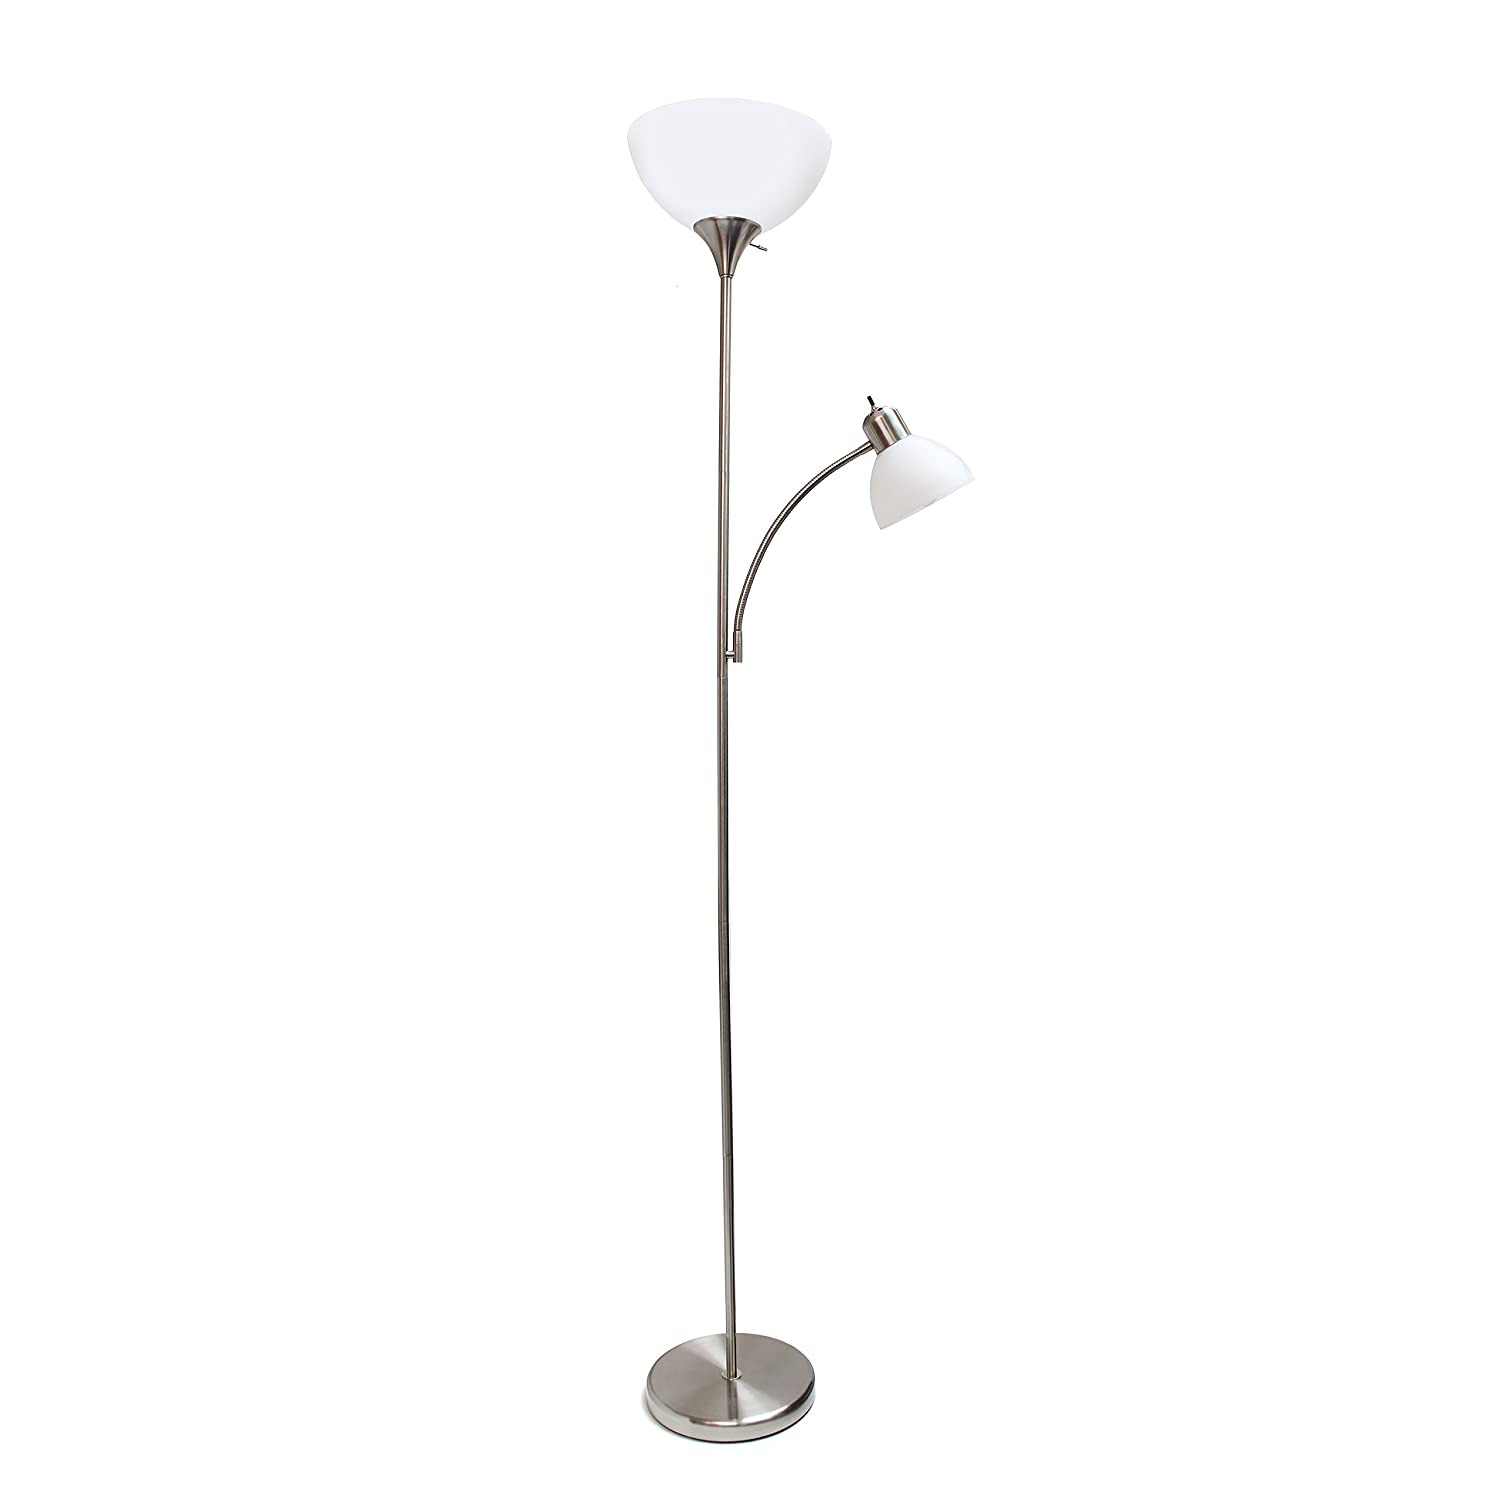 Simple Designs Home LF2000-BSN Simple Designs Brushed Nickel Floor Lamp with Reading Light